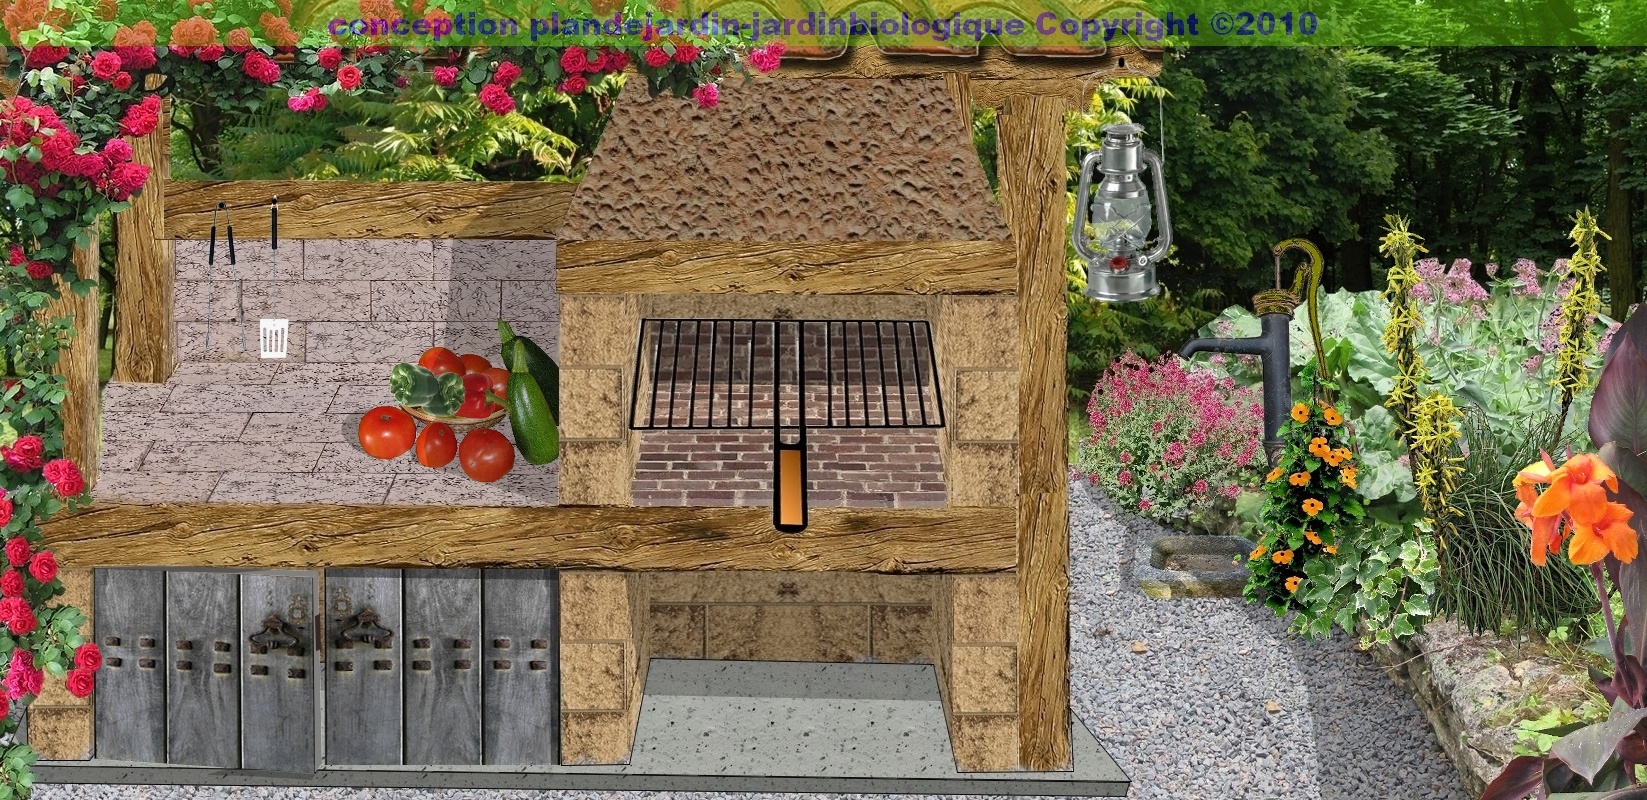 Construire un barbecue barbecue en pierre - Construire un barbecue en pierre ...